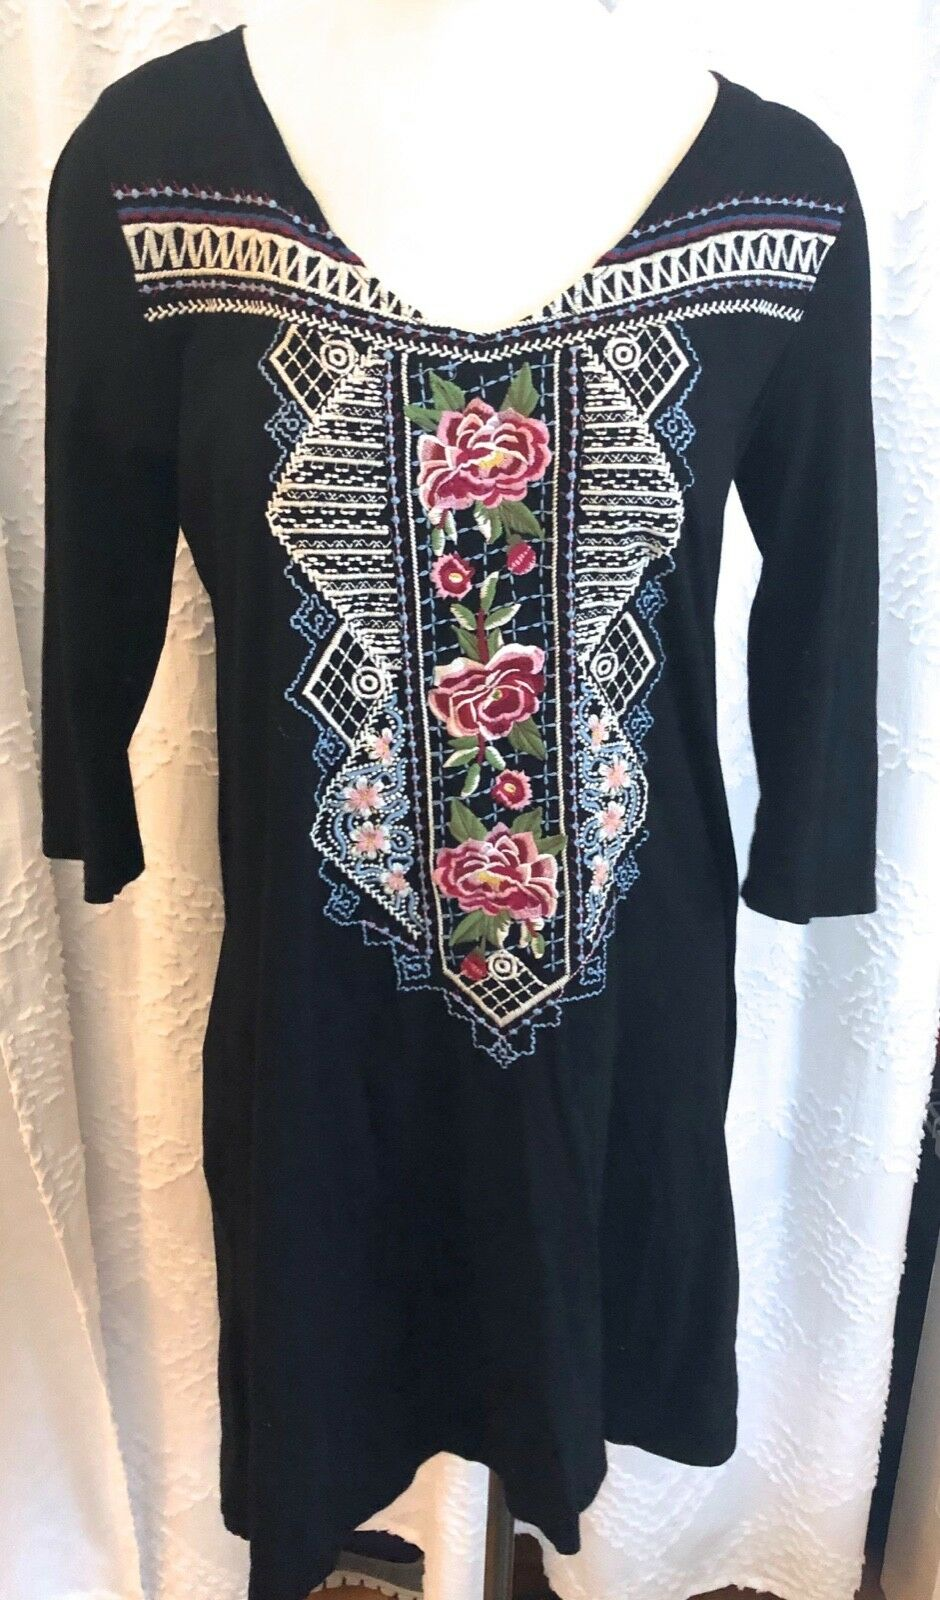 Johnny Was JW Los Angeles M schwarz Cotton Knit Tunic Dress Embroiderot rot Rosas